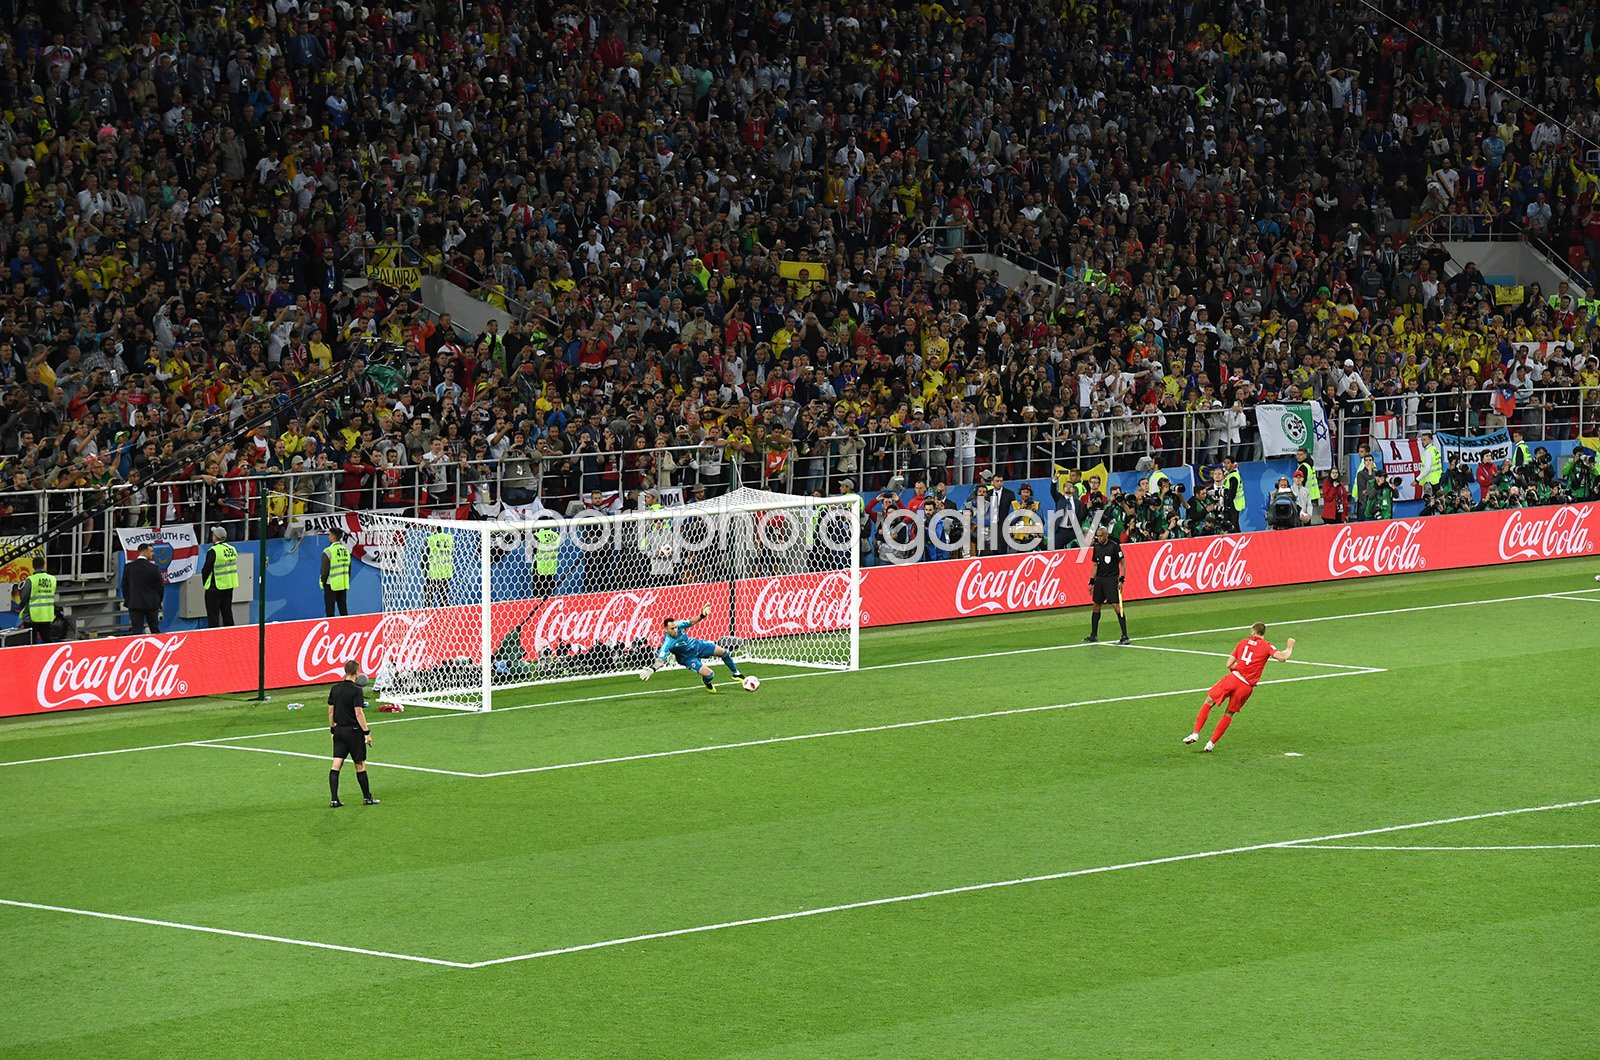 Eric Dier Winning Penalty England v Colombia World Cup 2018